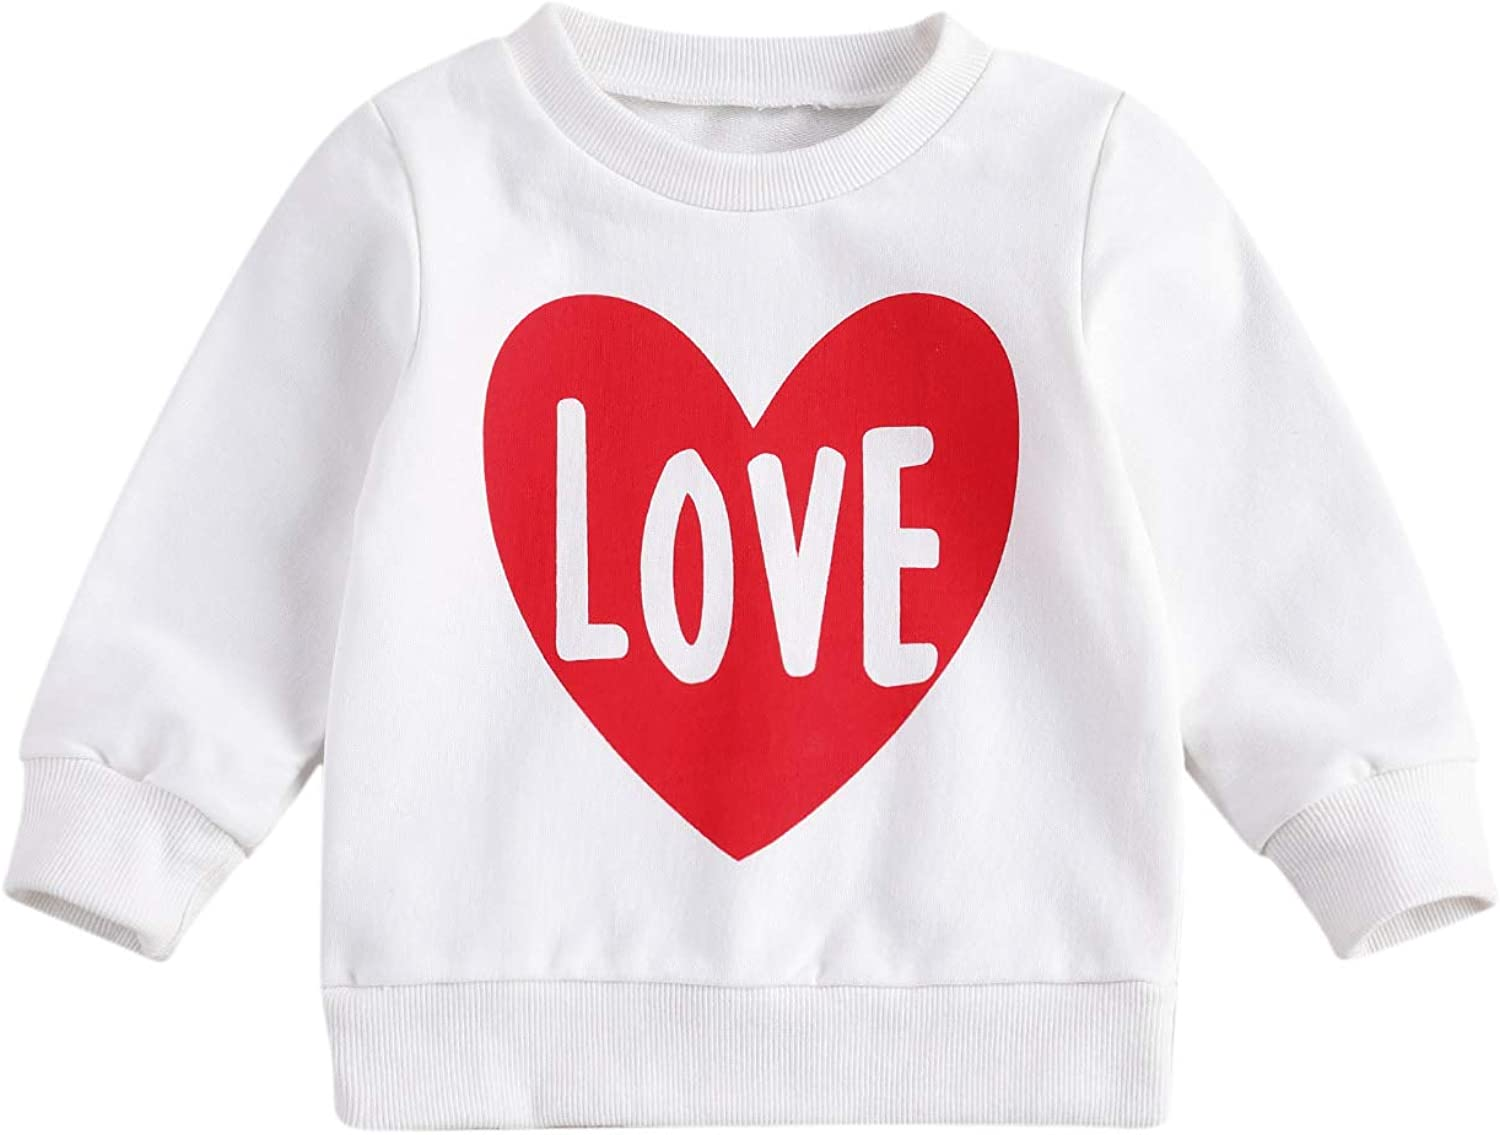 FYBITBO Toddler Baby Girl Knit Sweaters Heart Print Crewneck Pullover Sweatshirt Fall Winter Clothes